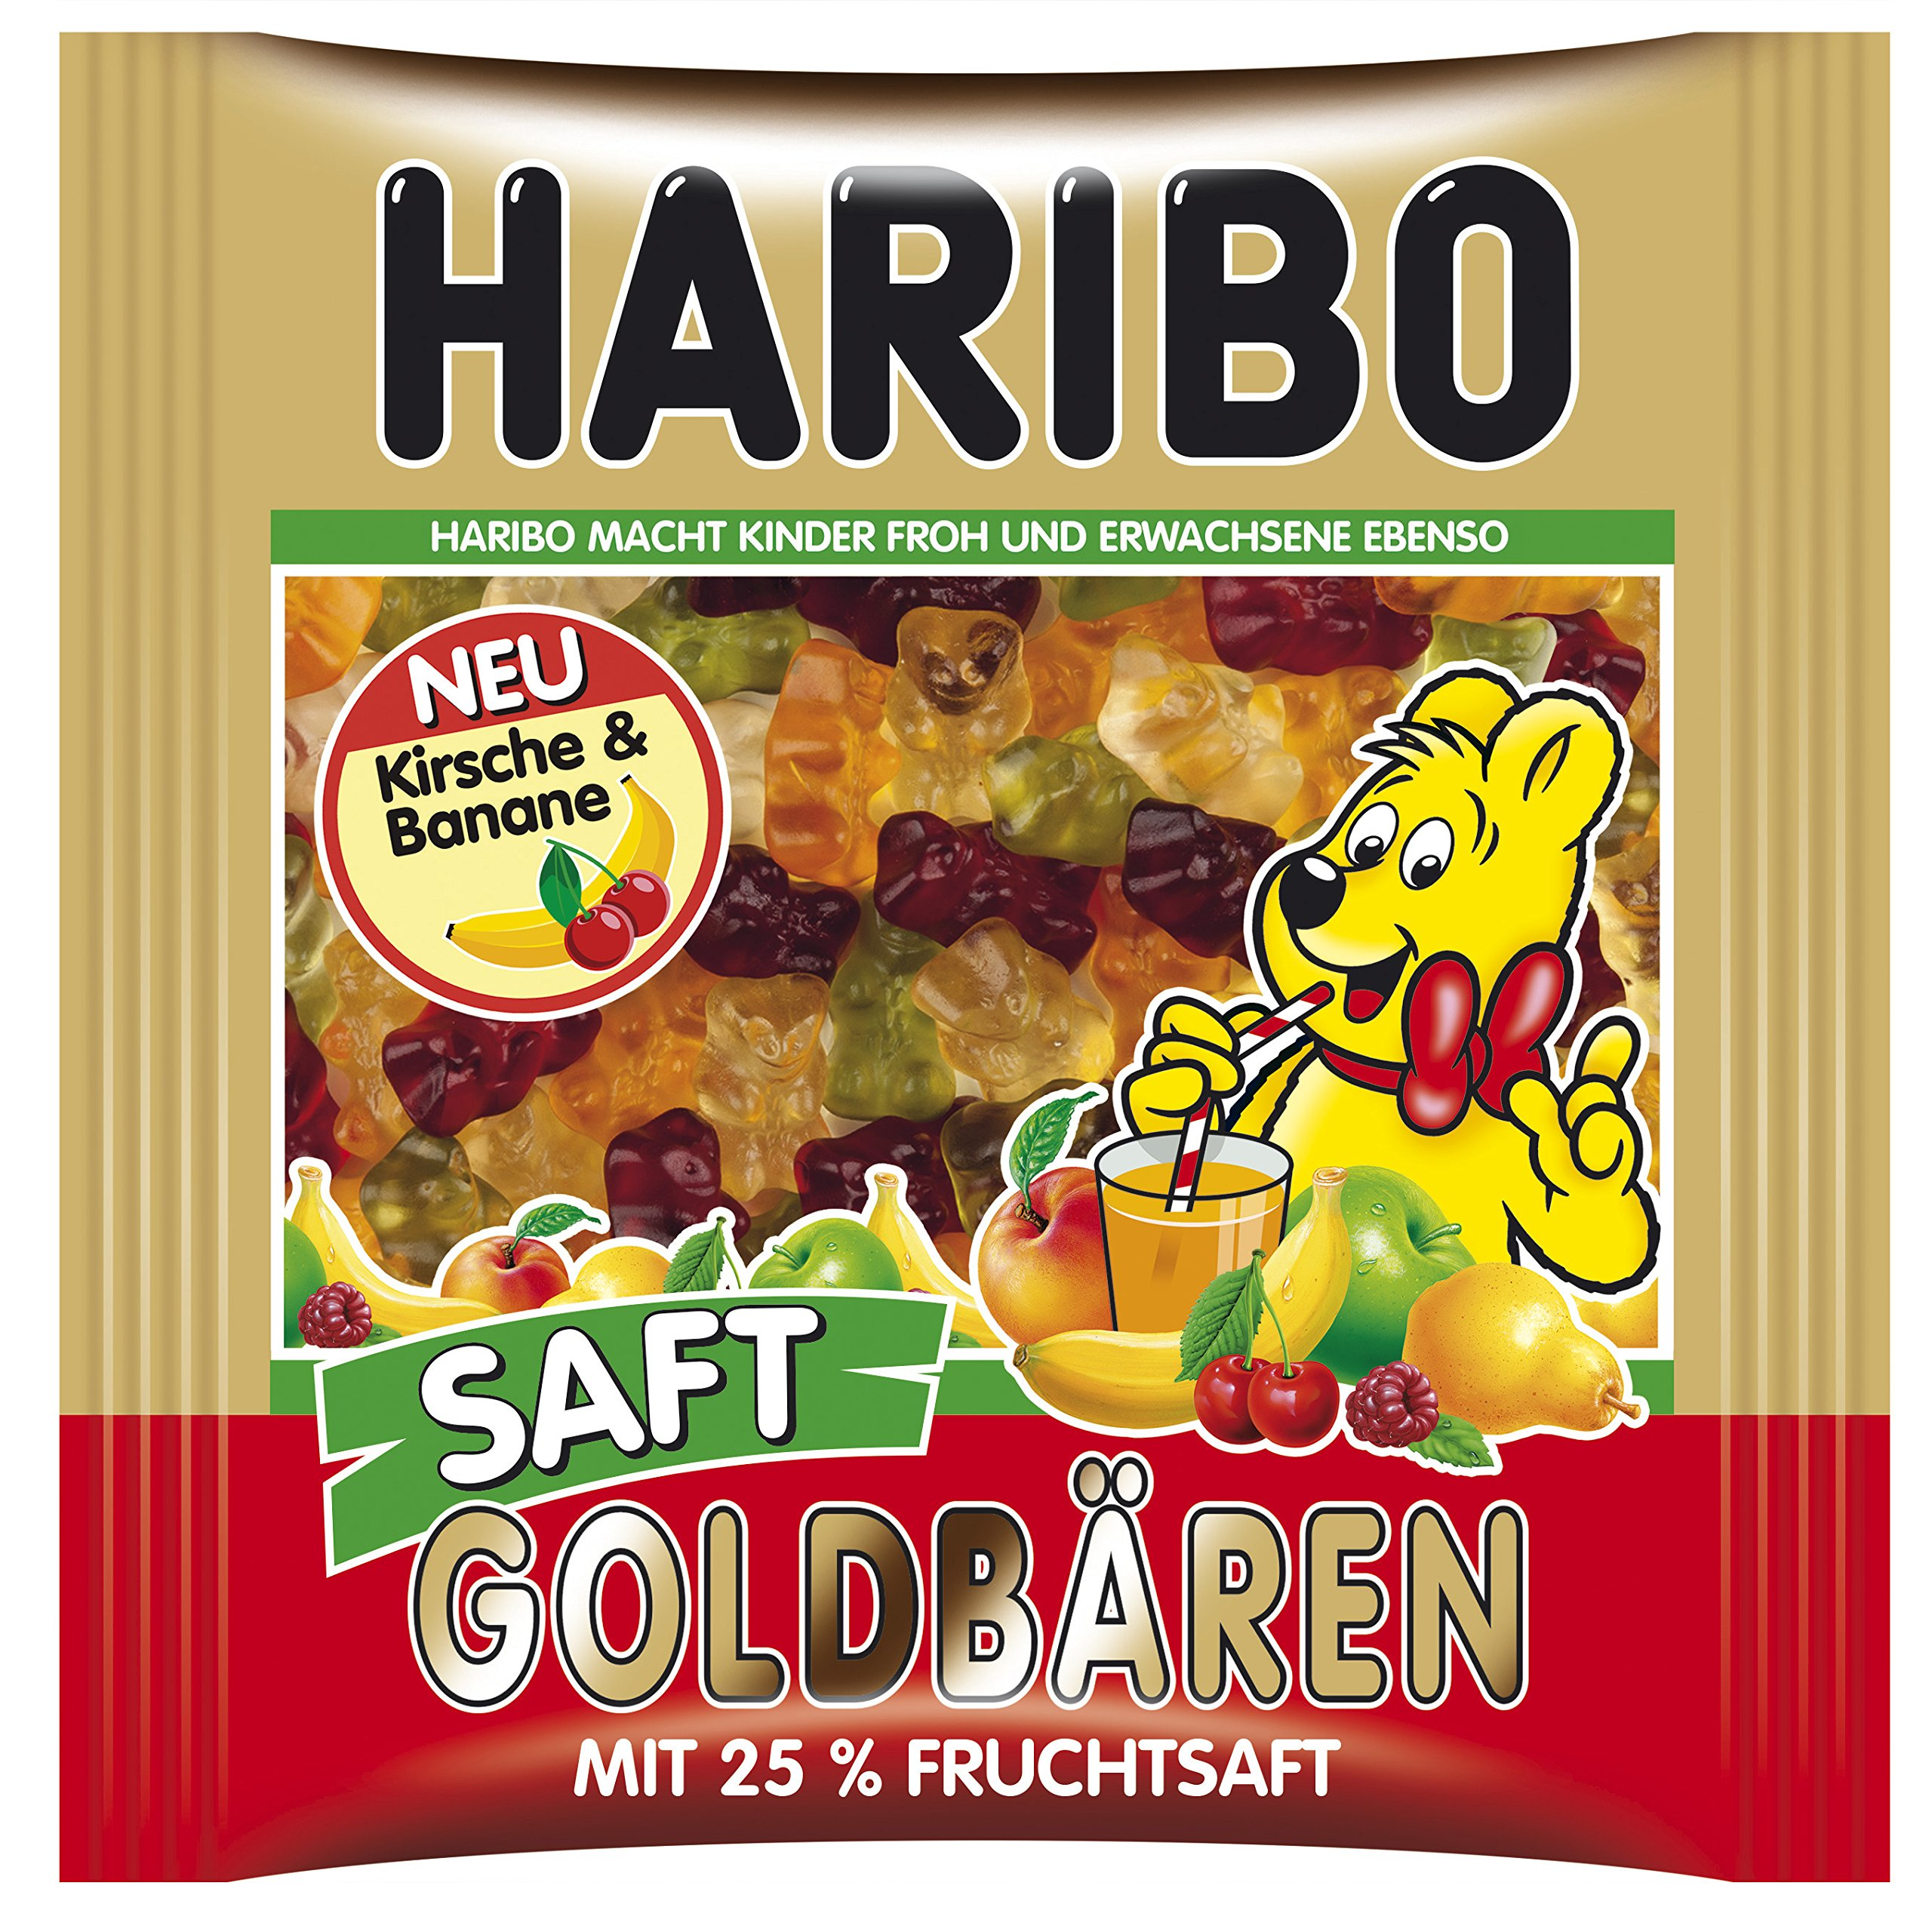 Haribo gummy bears are just one of many products that thomas - Haribo Juicy Gold Bears 450g 15 87 Ounce In Resealable Bag